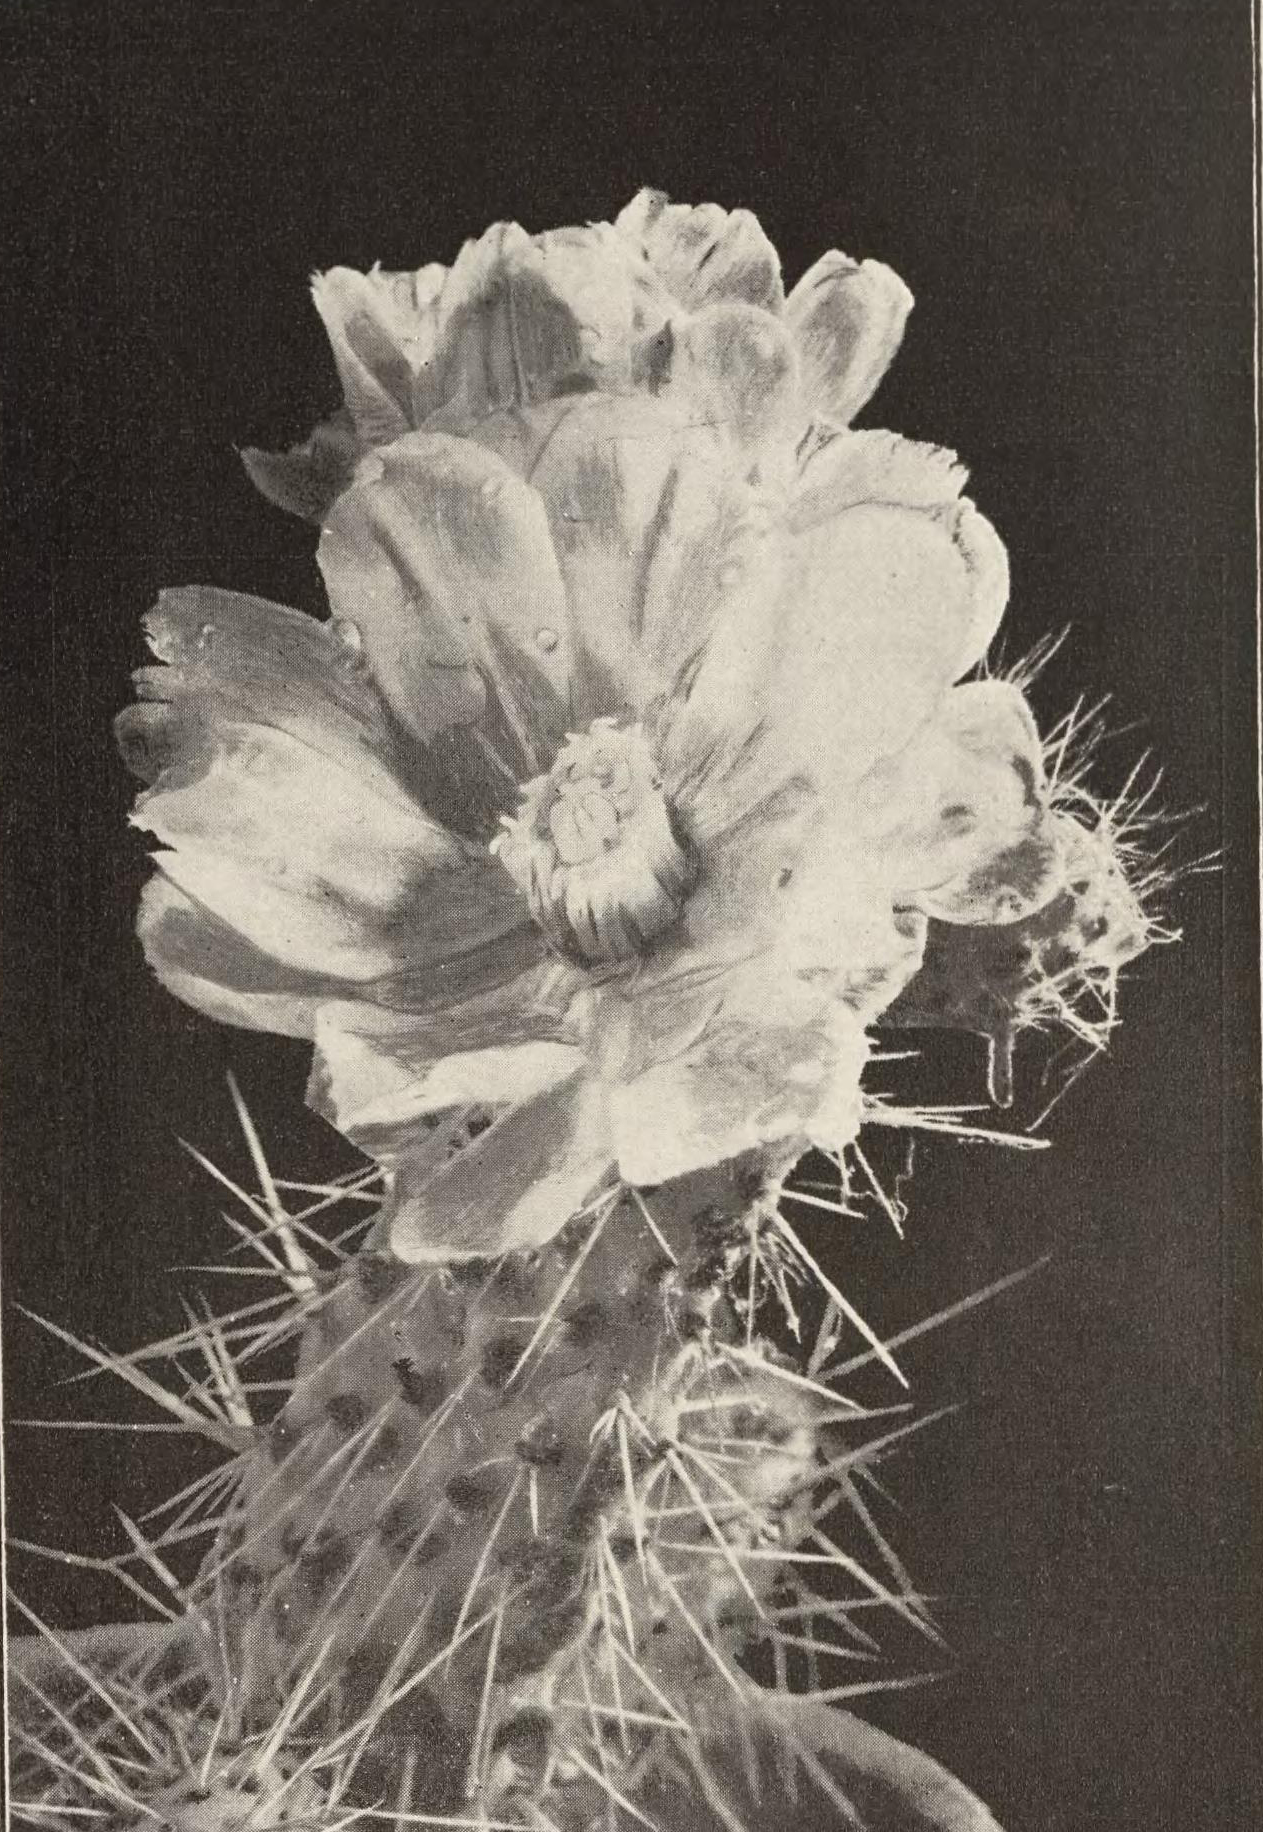 A cactus in bloom.